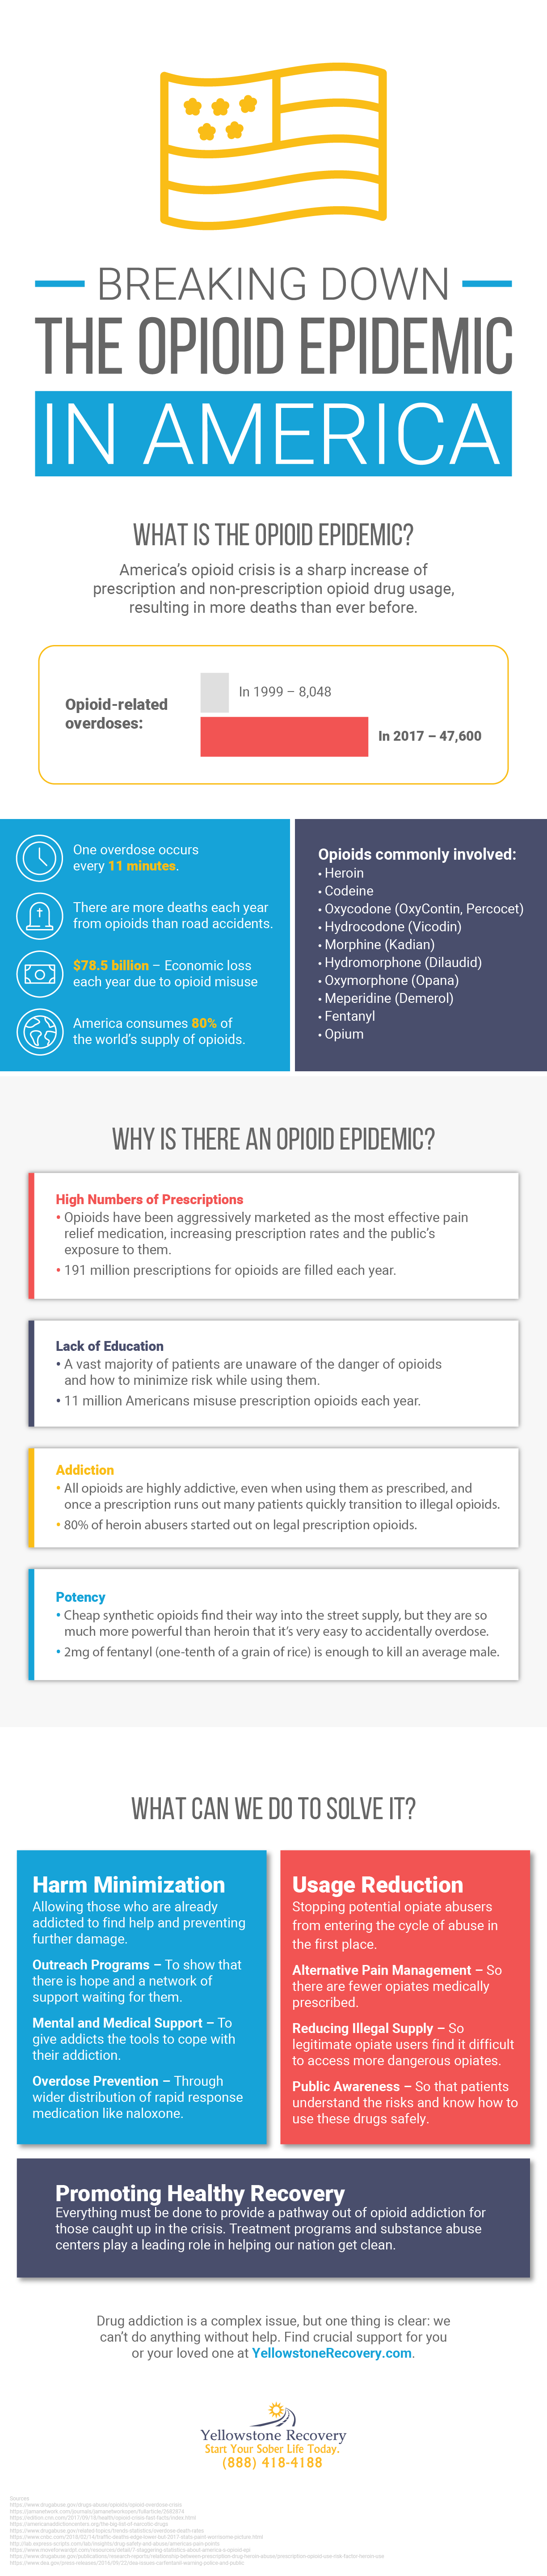 breaking down the opioid epidemic in the US infographic